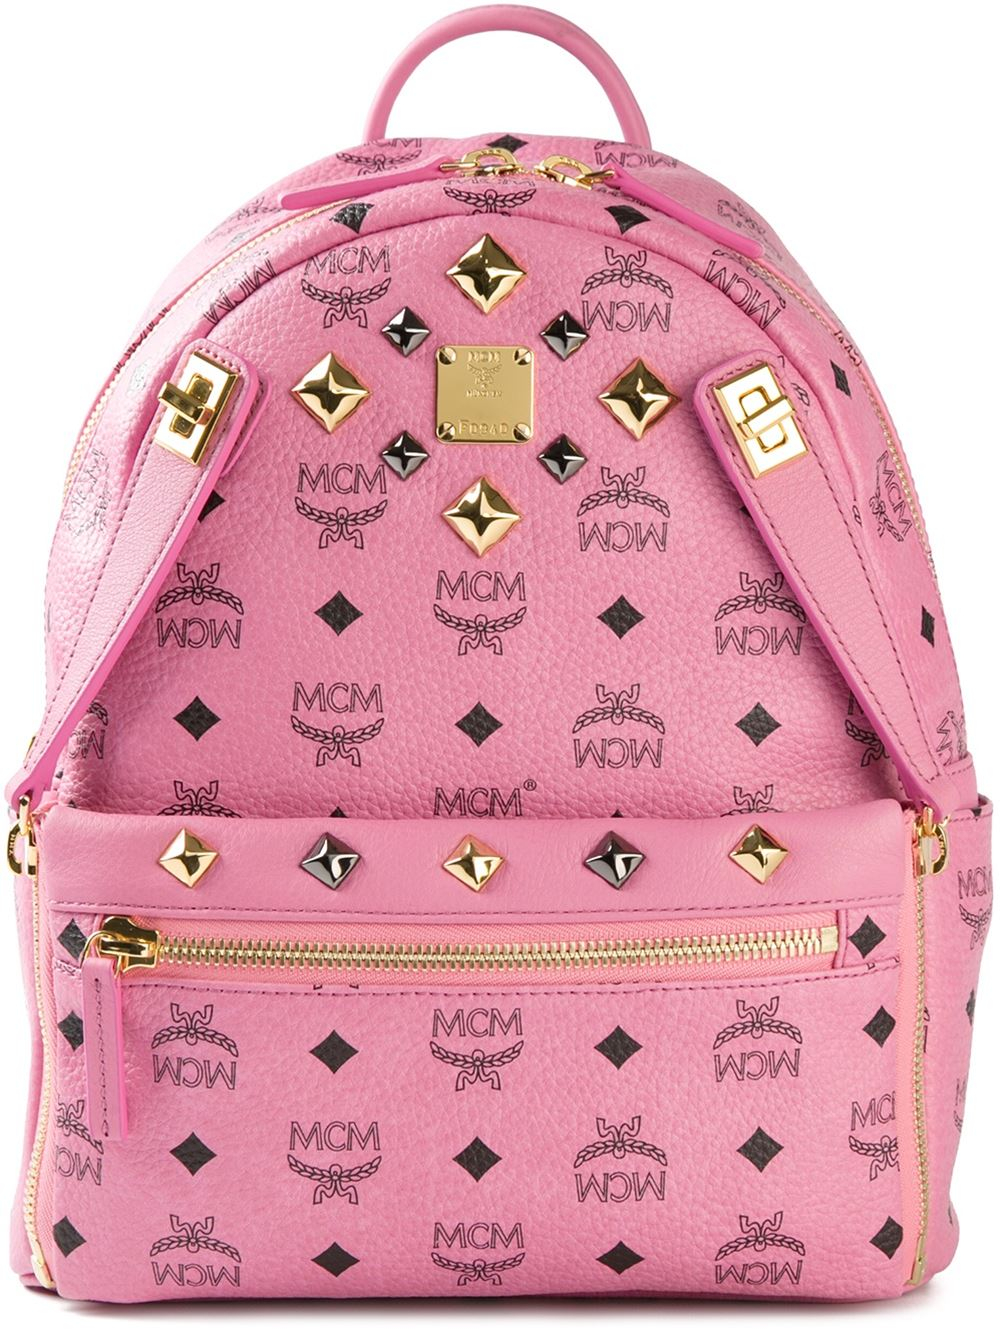 Mcm 'Stark' Backpack in Pink | Lyst